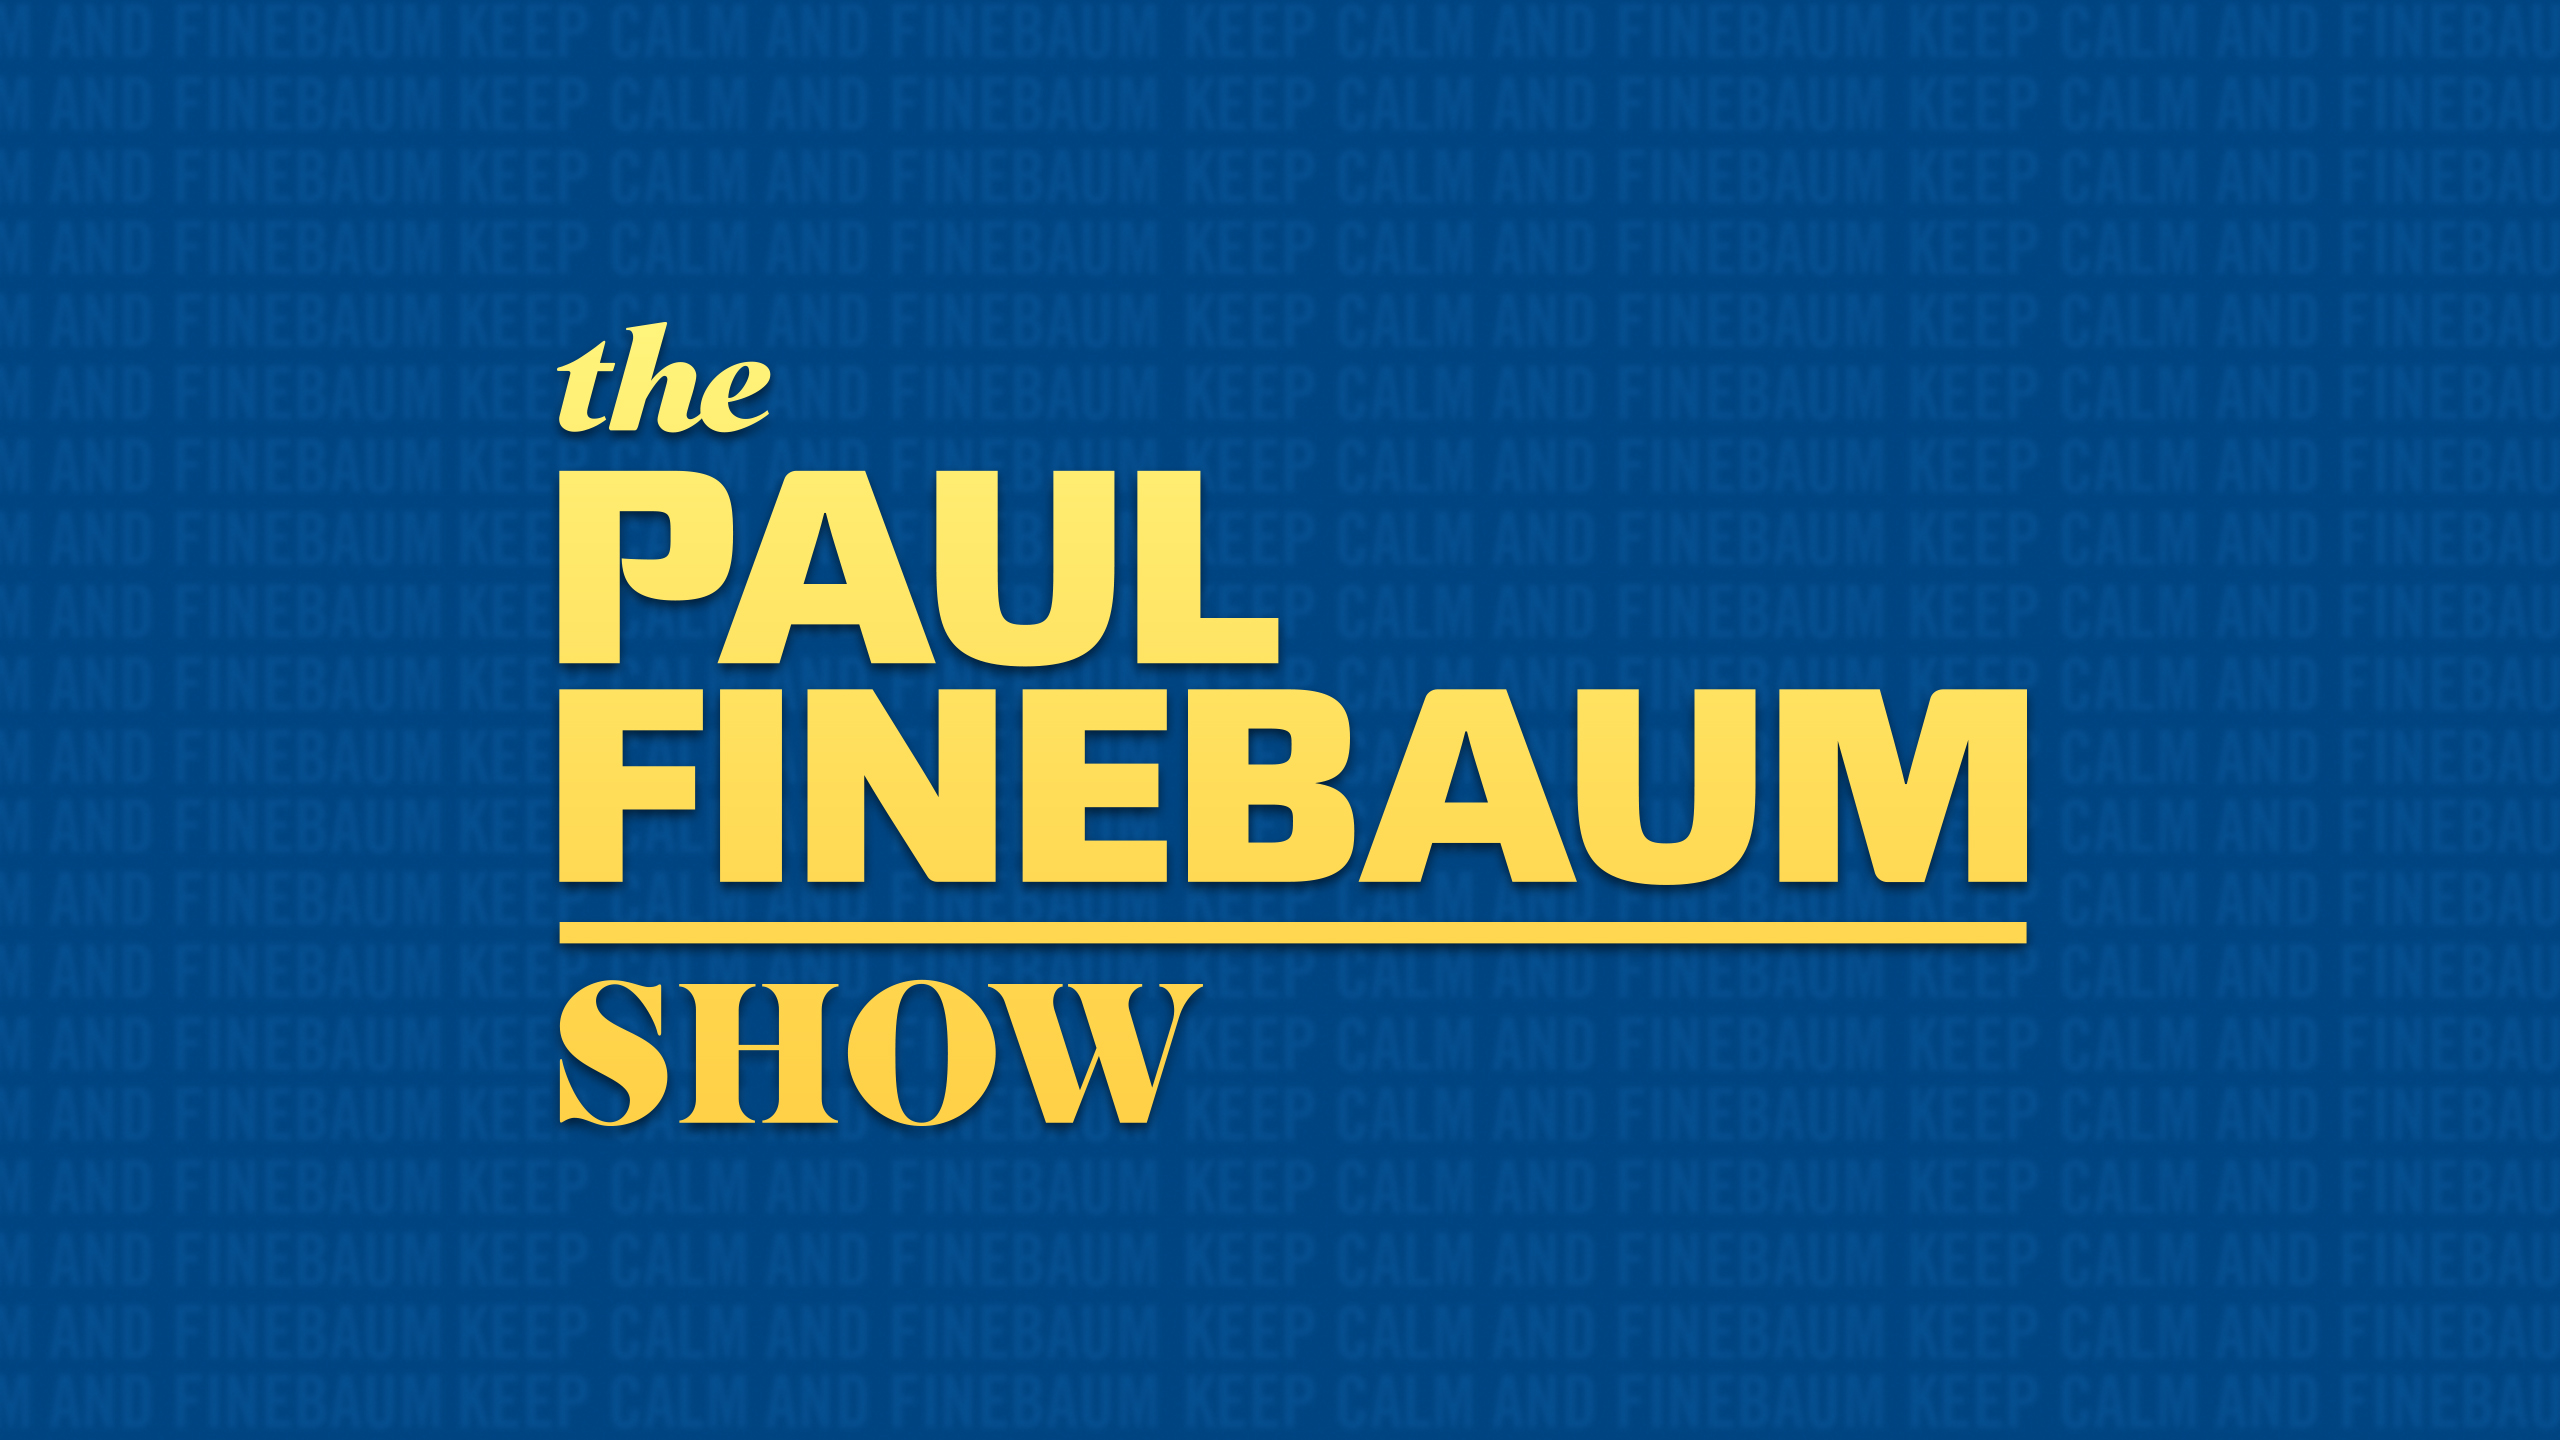 Mon, 10/22 - The Paul Finebaum Show Presented by Regions Bank